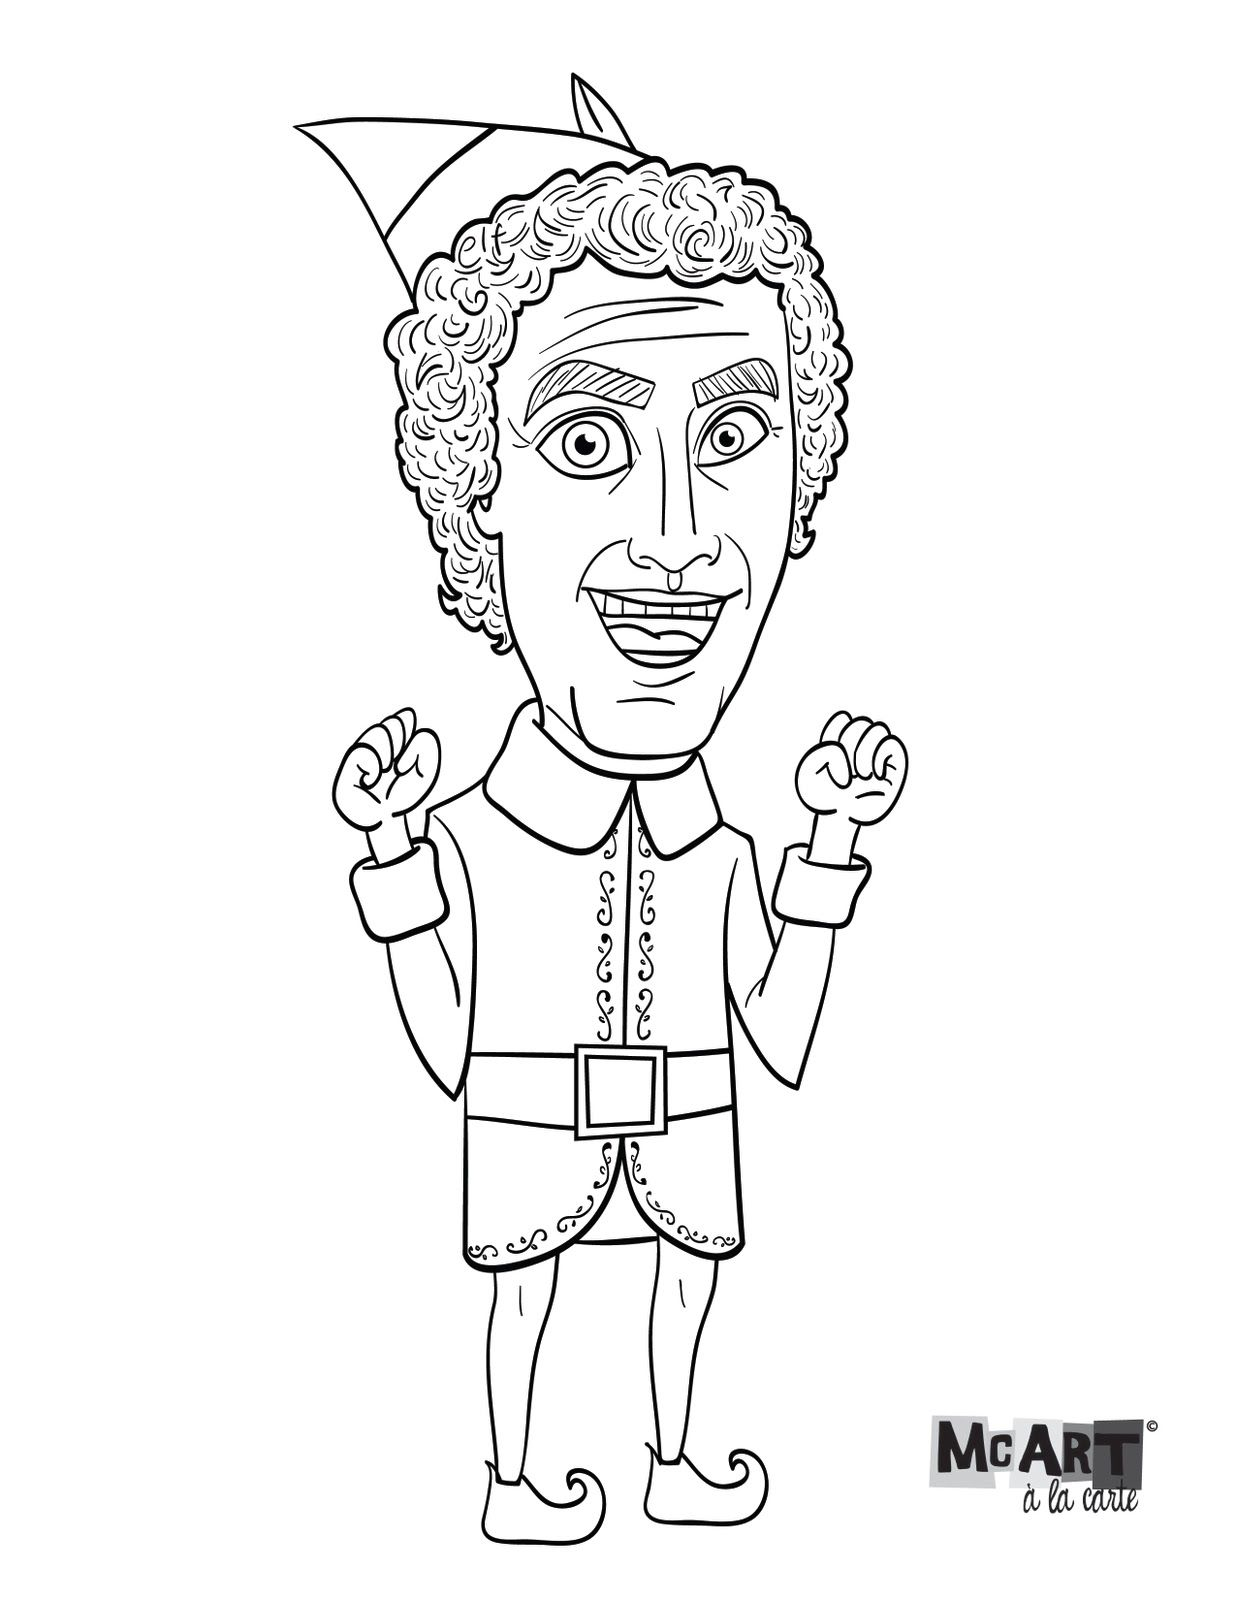 mcart la carte buddy the elf coloring page